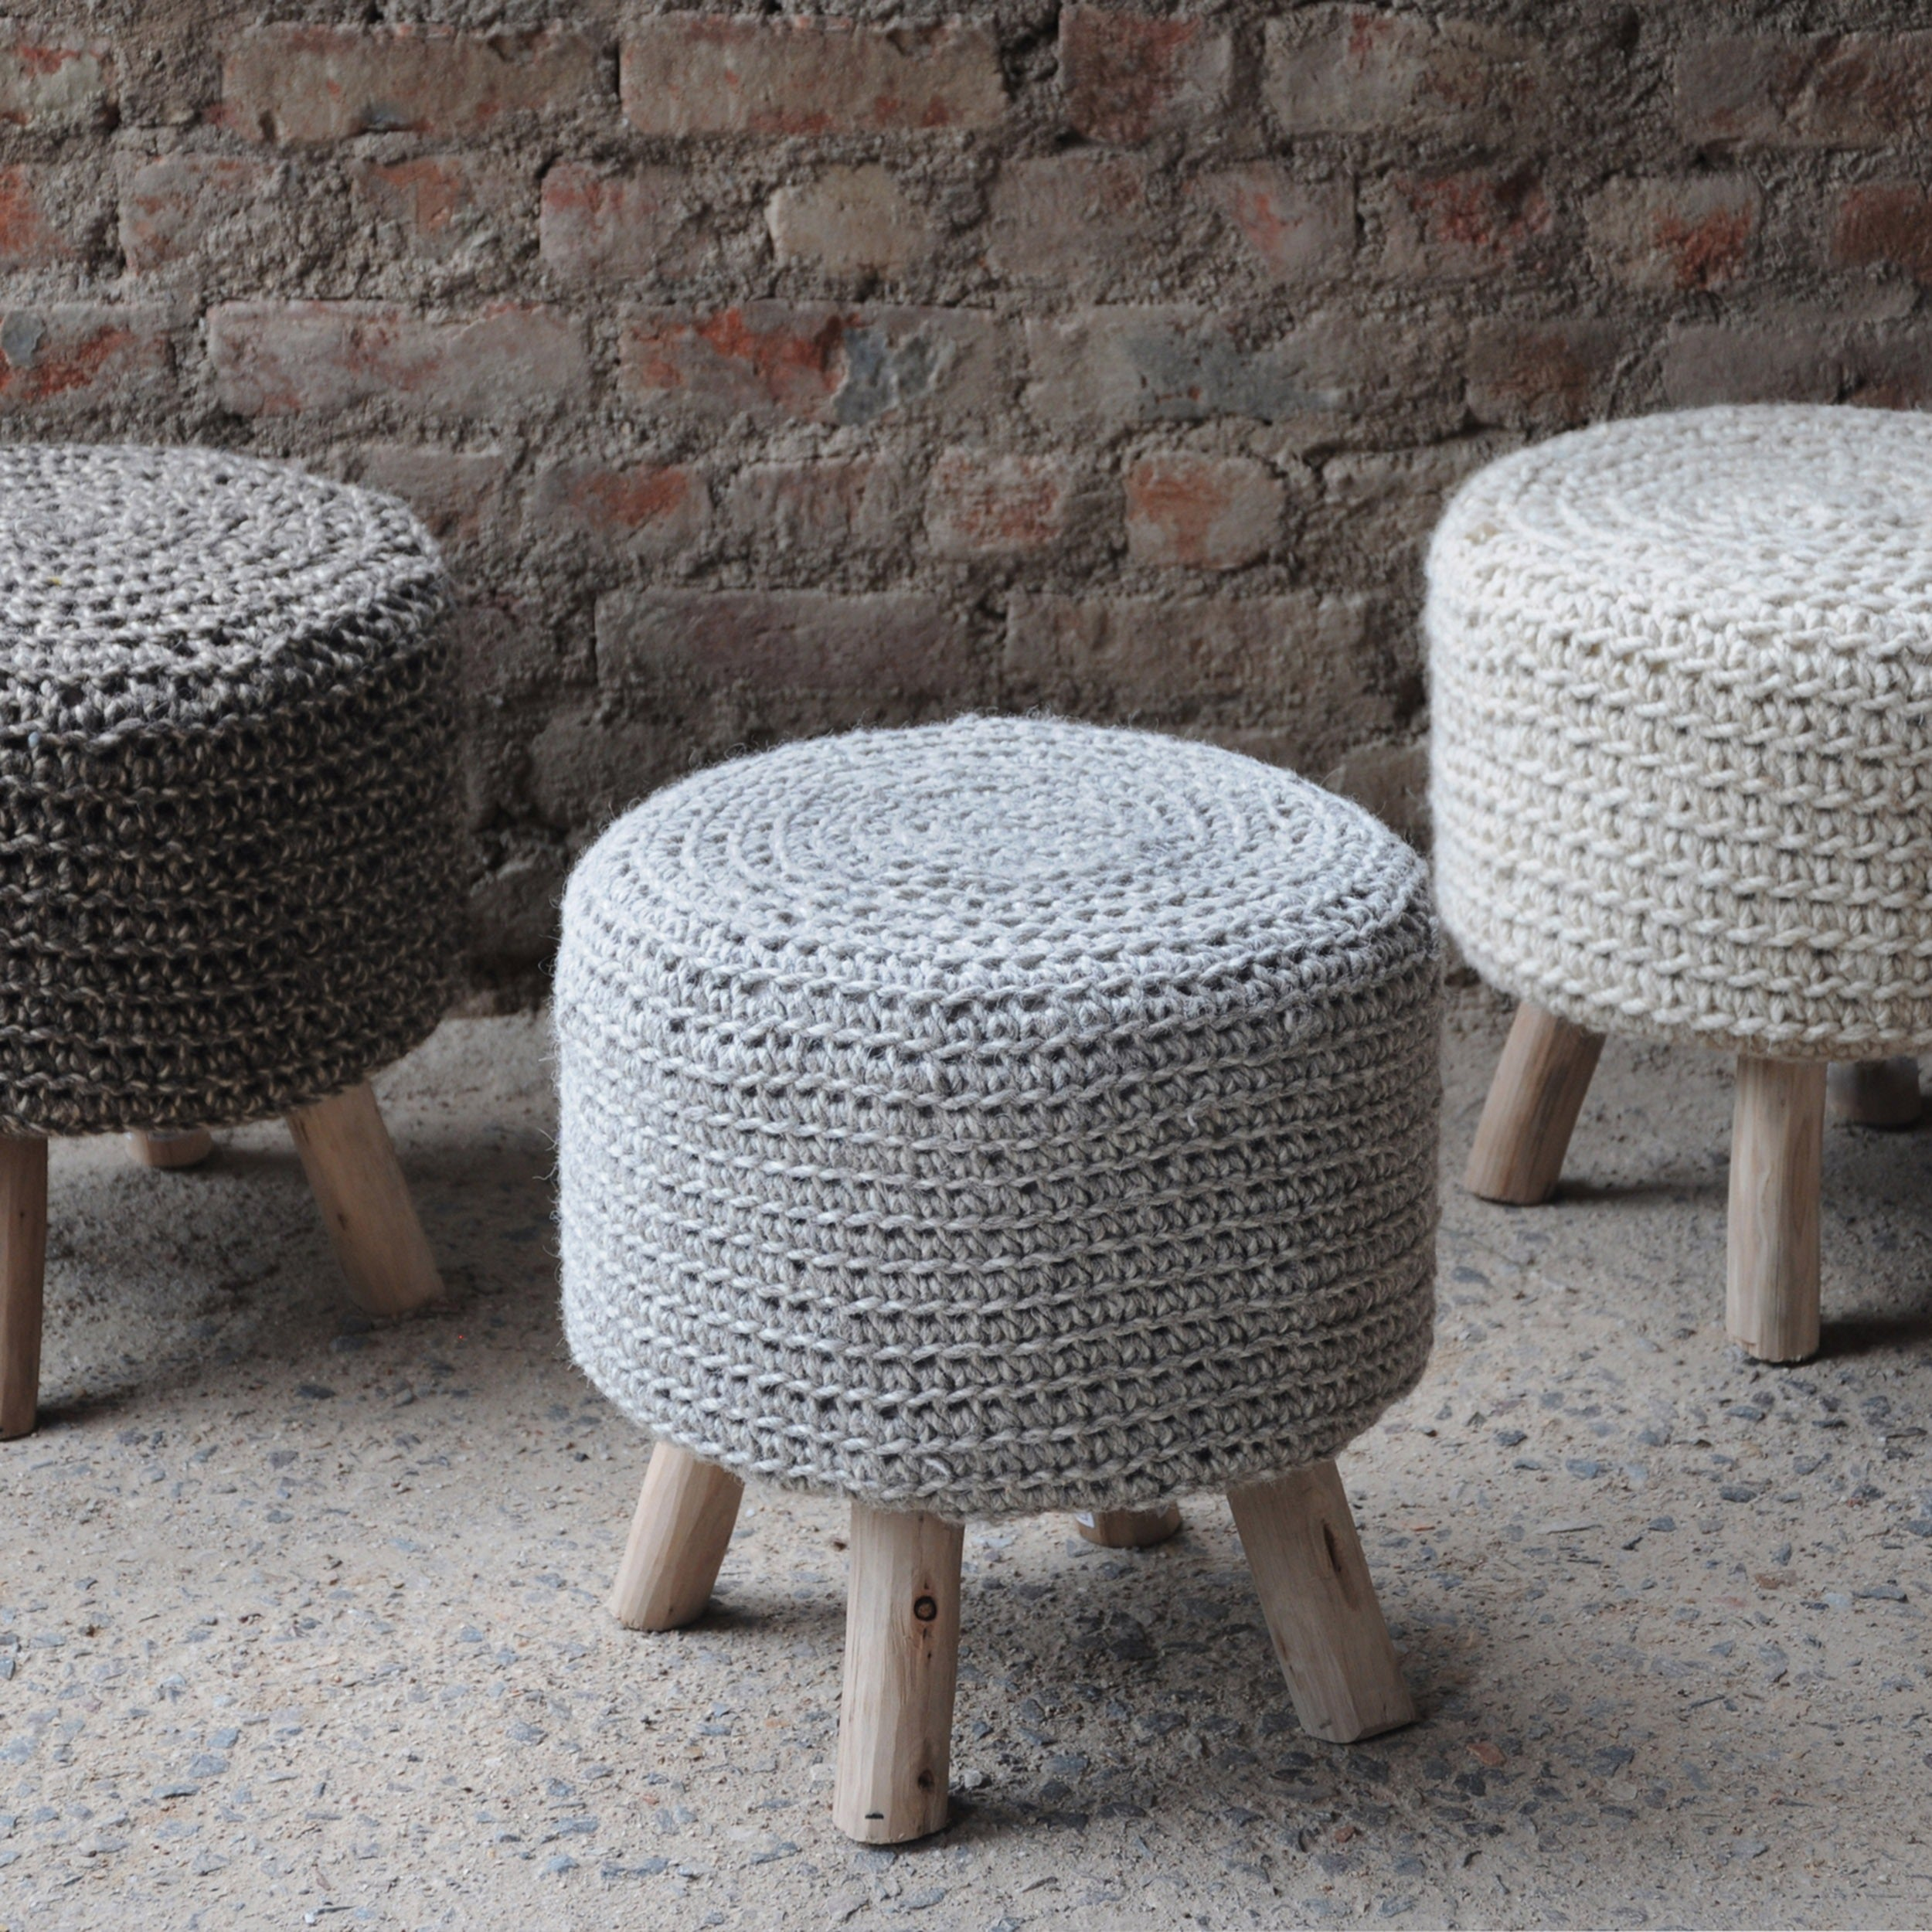 Awesome Christopher Knight Home Montana Knitted Fabric Round Ottoman Stool Machost Co Dining Chair Design Ideas Machostcouk